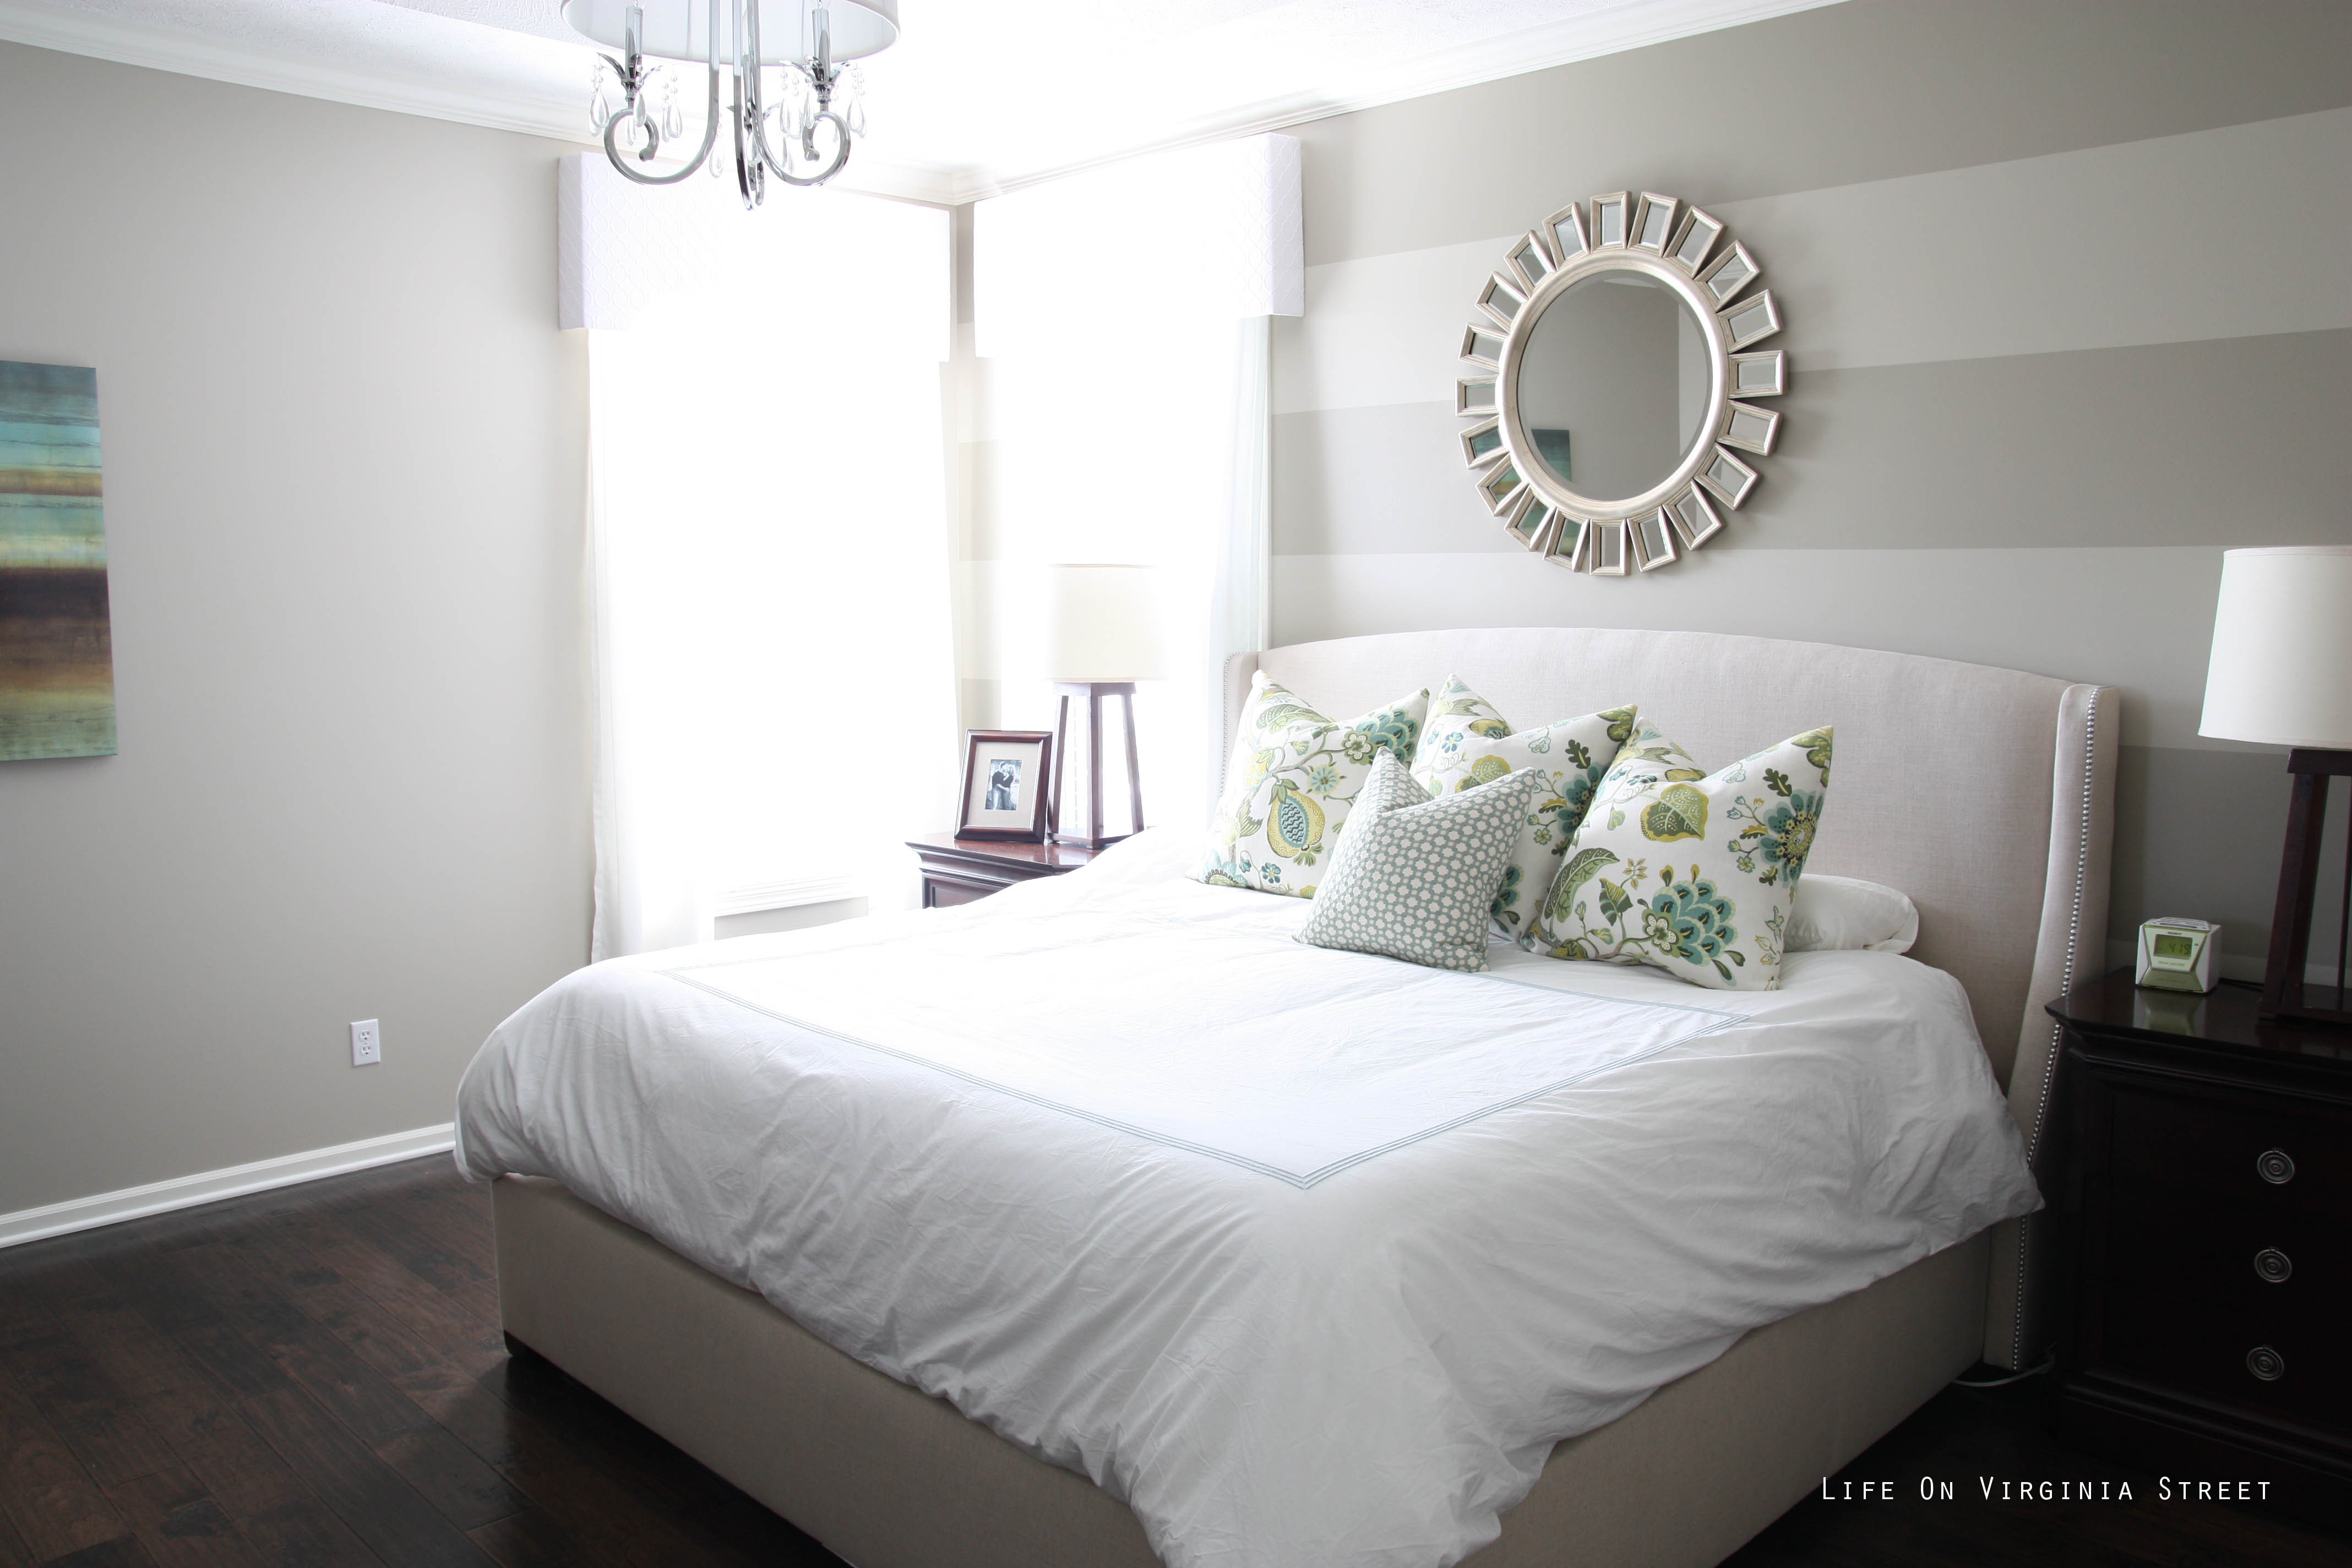 Best ideas about Paint Colors For Bedroom . Save or Pin Castle Path and Garden Wall Now.